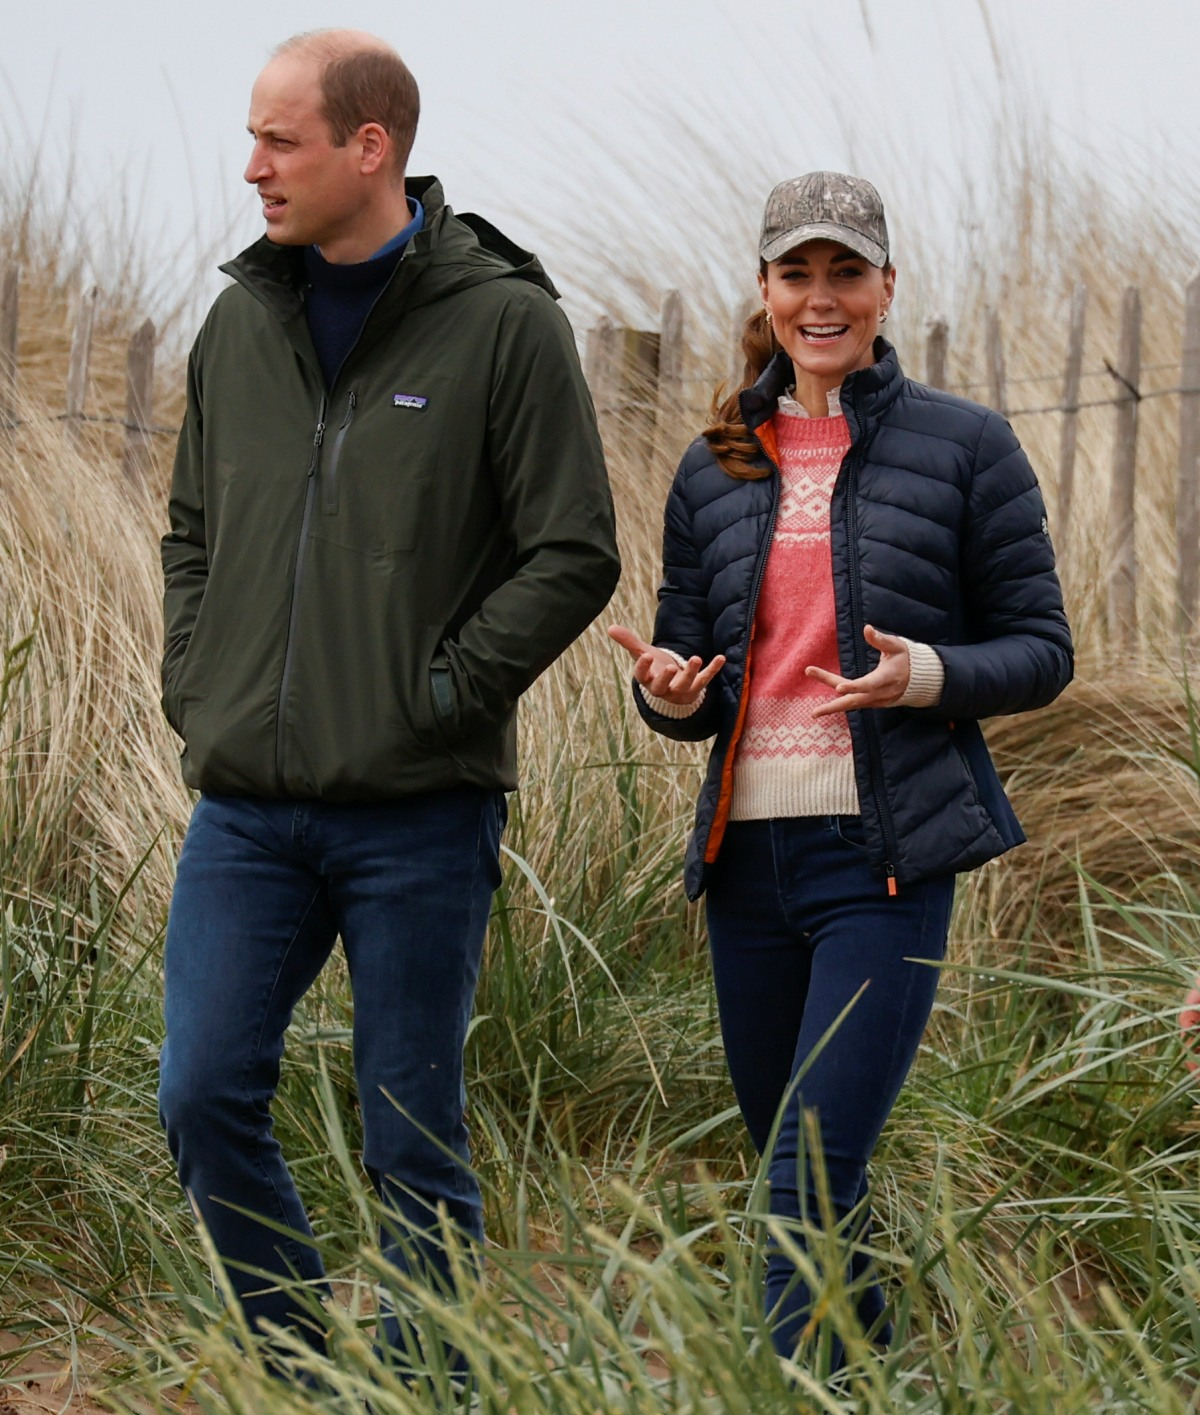 Britain's Prince William and Catherine, Duchess of Cambridge try land yachting at St Andrews